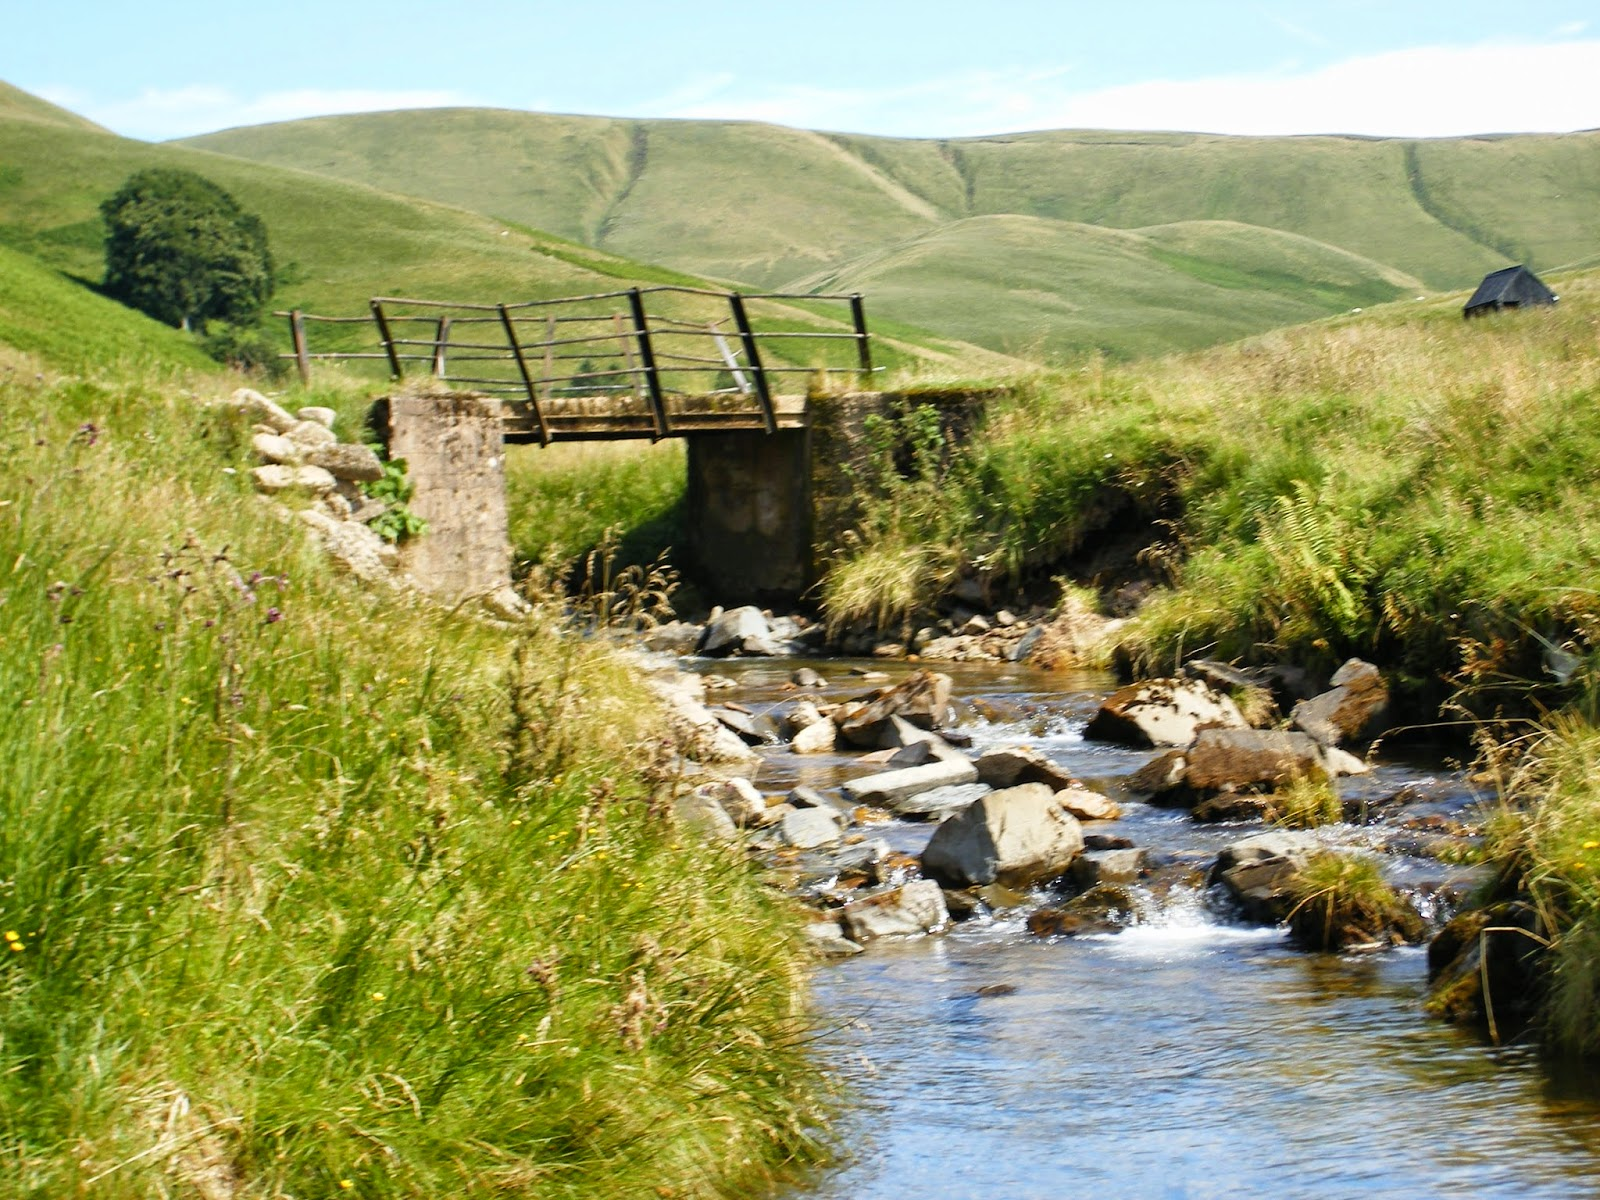 country landscape with hills, river/ stream and bridge in summer in scotland